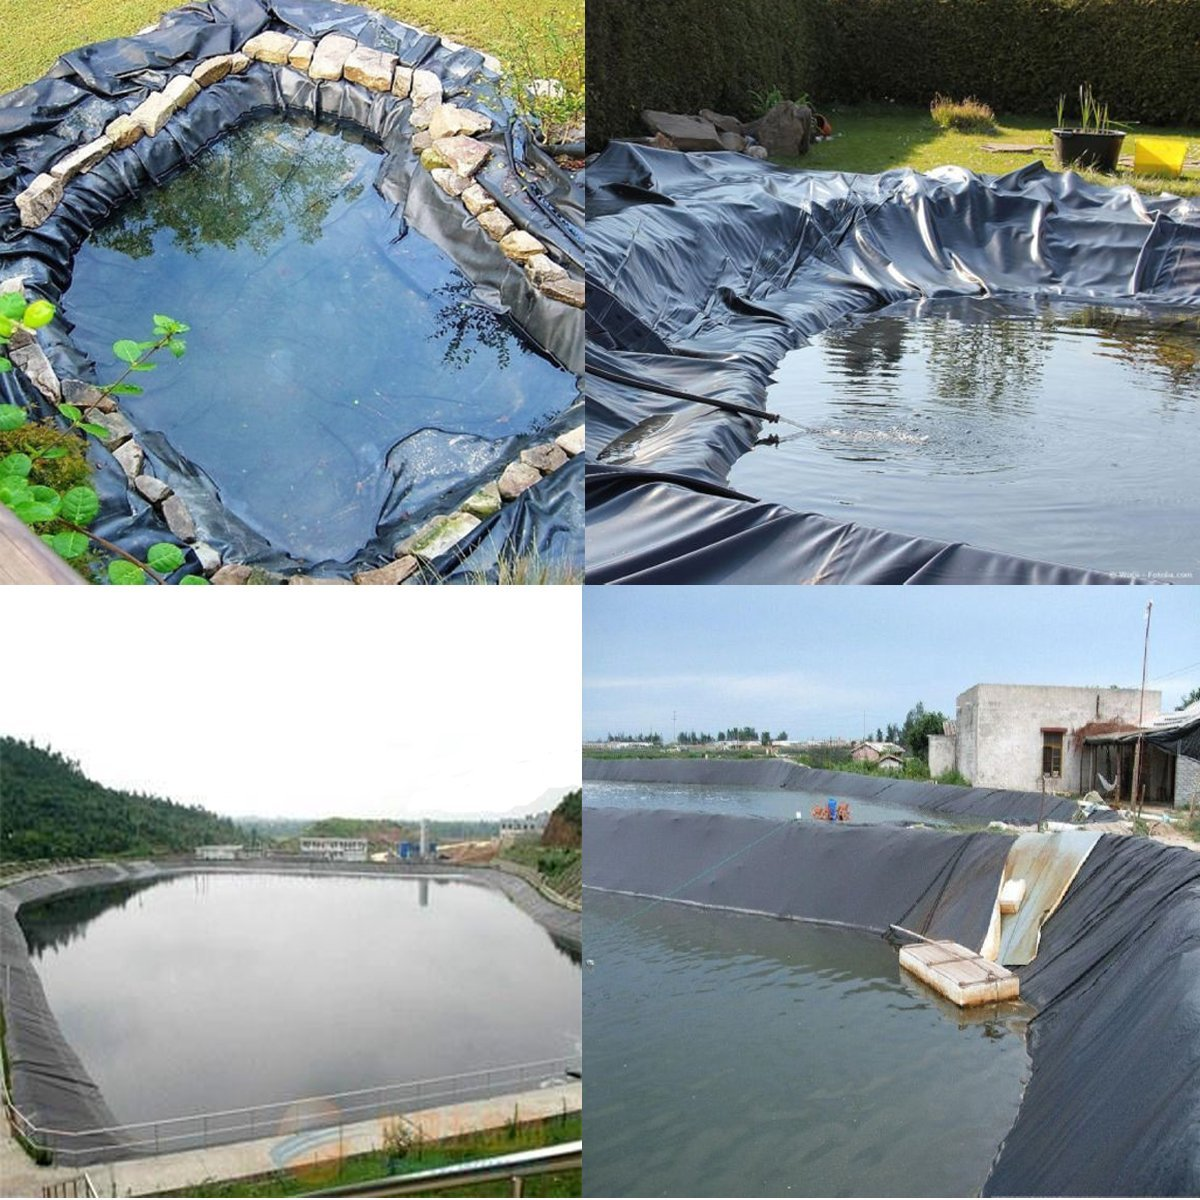 Hitommy Black EPDM Rubber Pond Water Garden Liner Waterproof Impermeable Membrane Mat 1.7x2m 1.7x4m - #1 by Hitommy